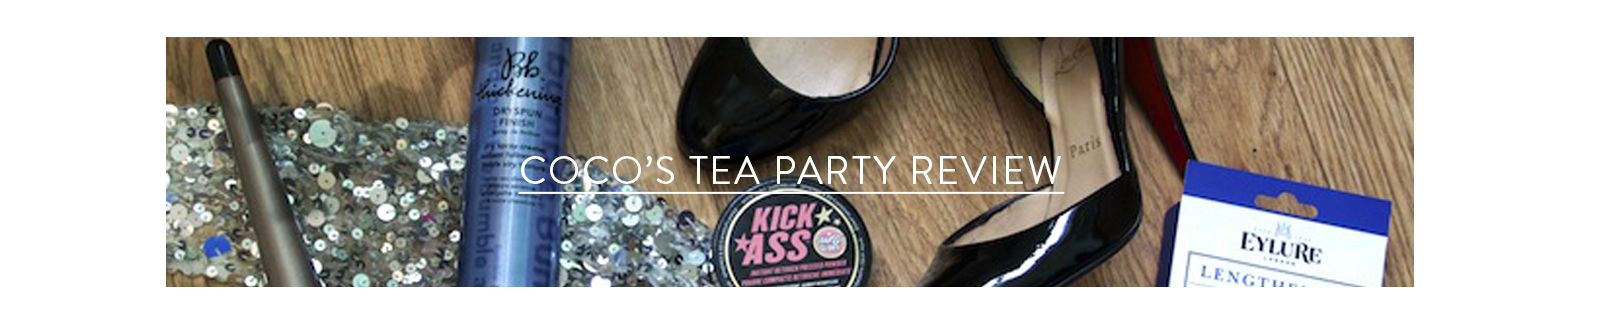 Cocos tea party reviews our backless and stick on bra